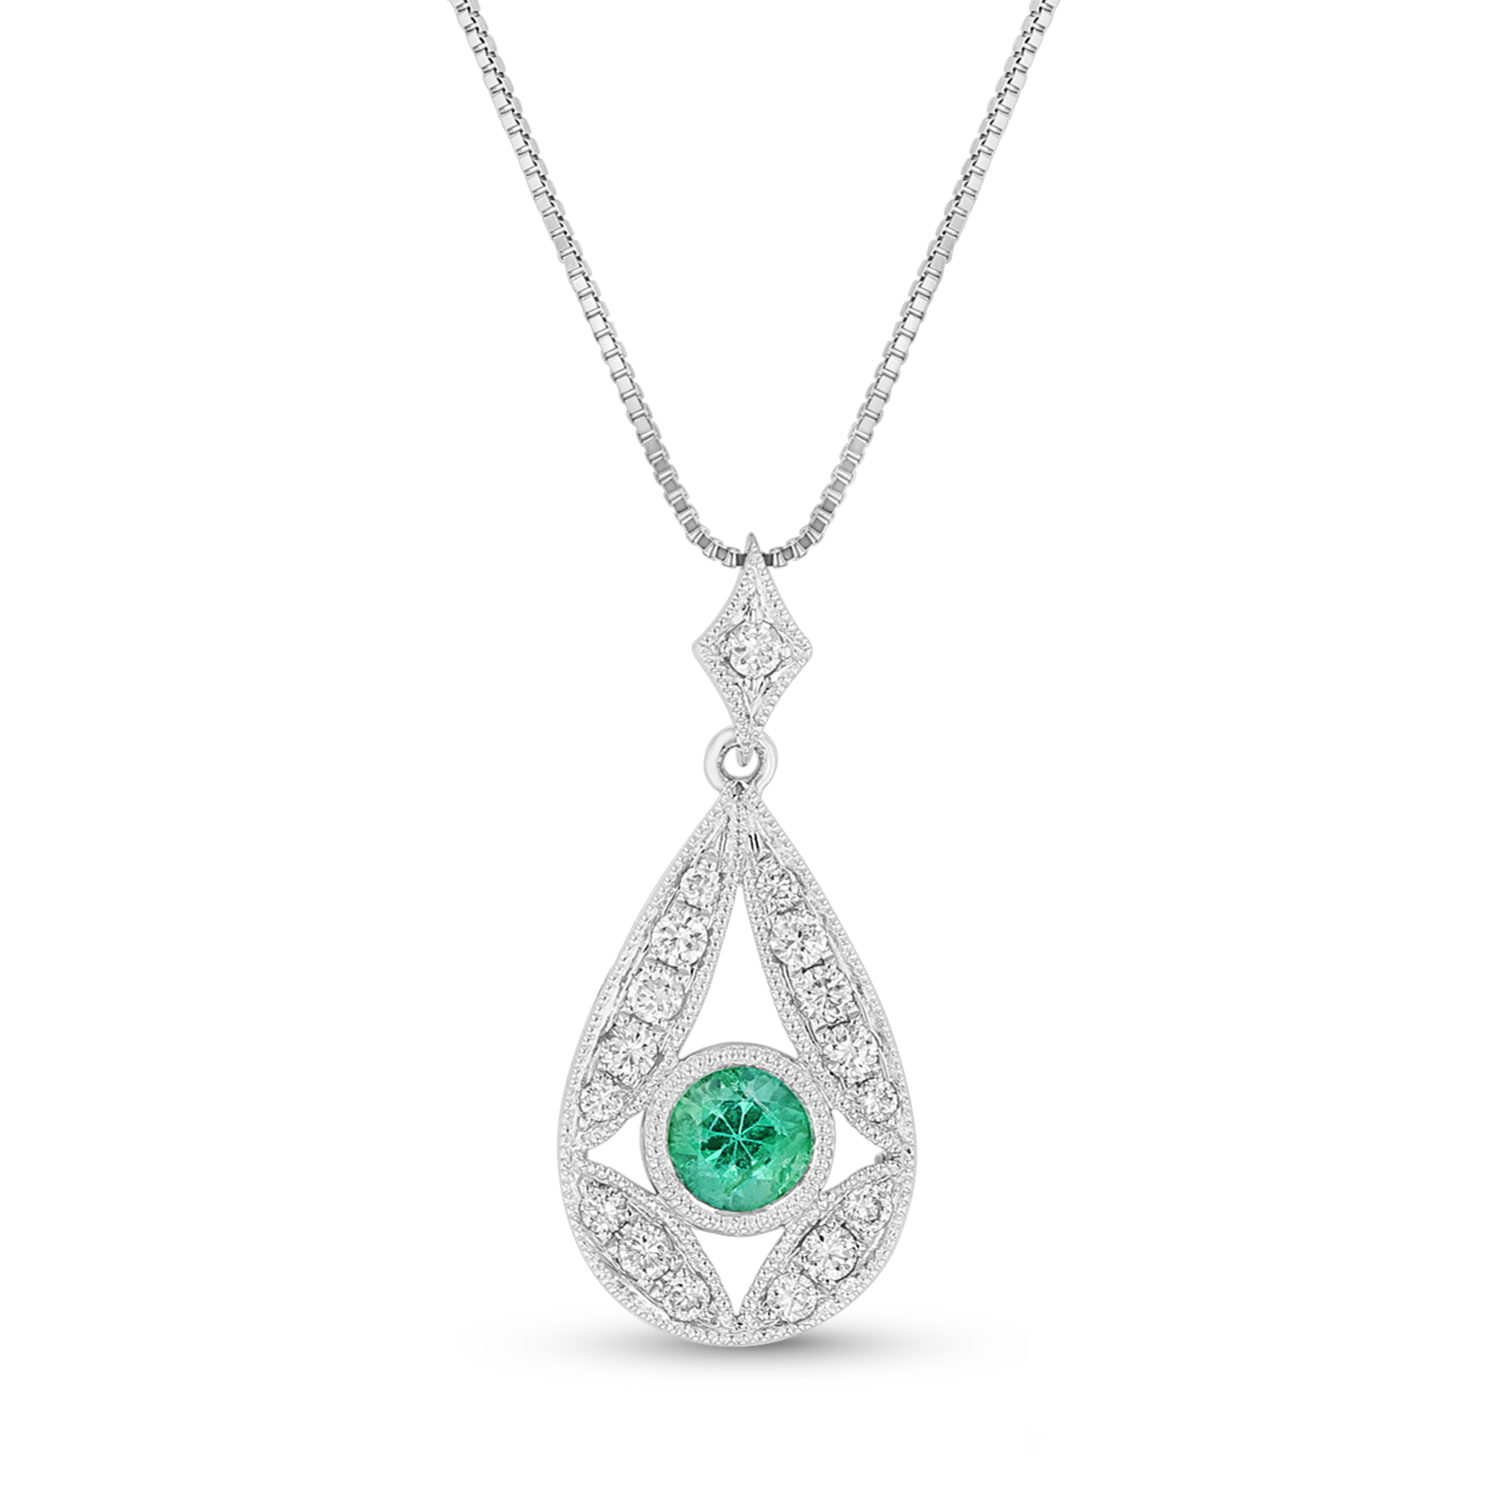 View Emerald and Diamond Pendant in 14k White Gold